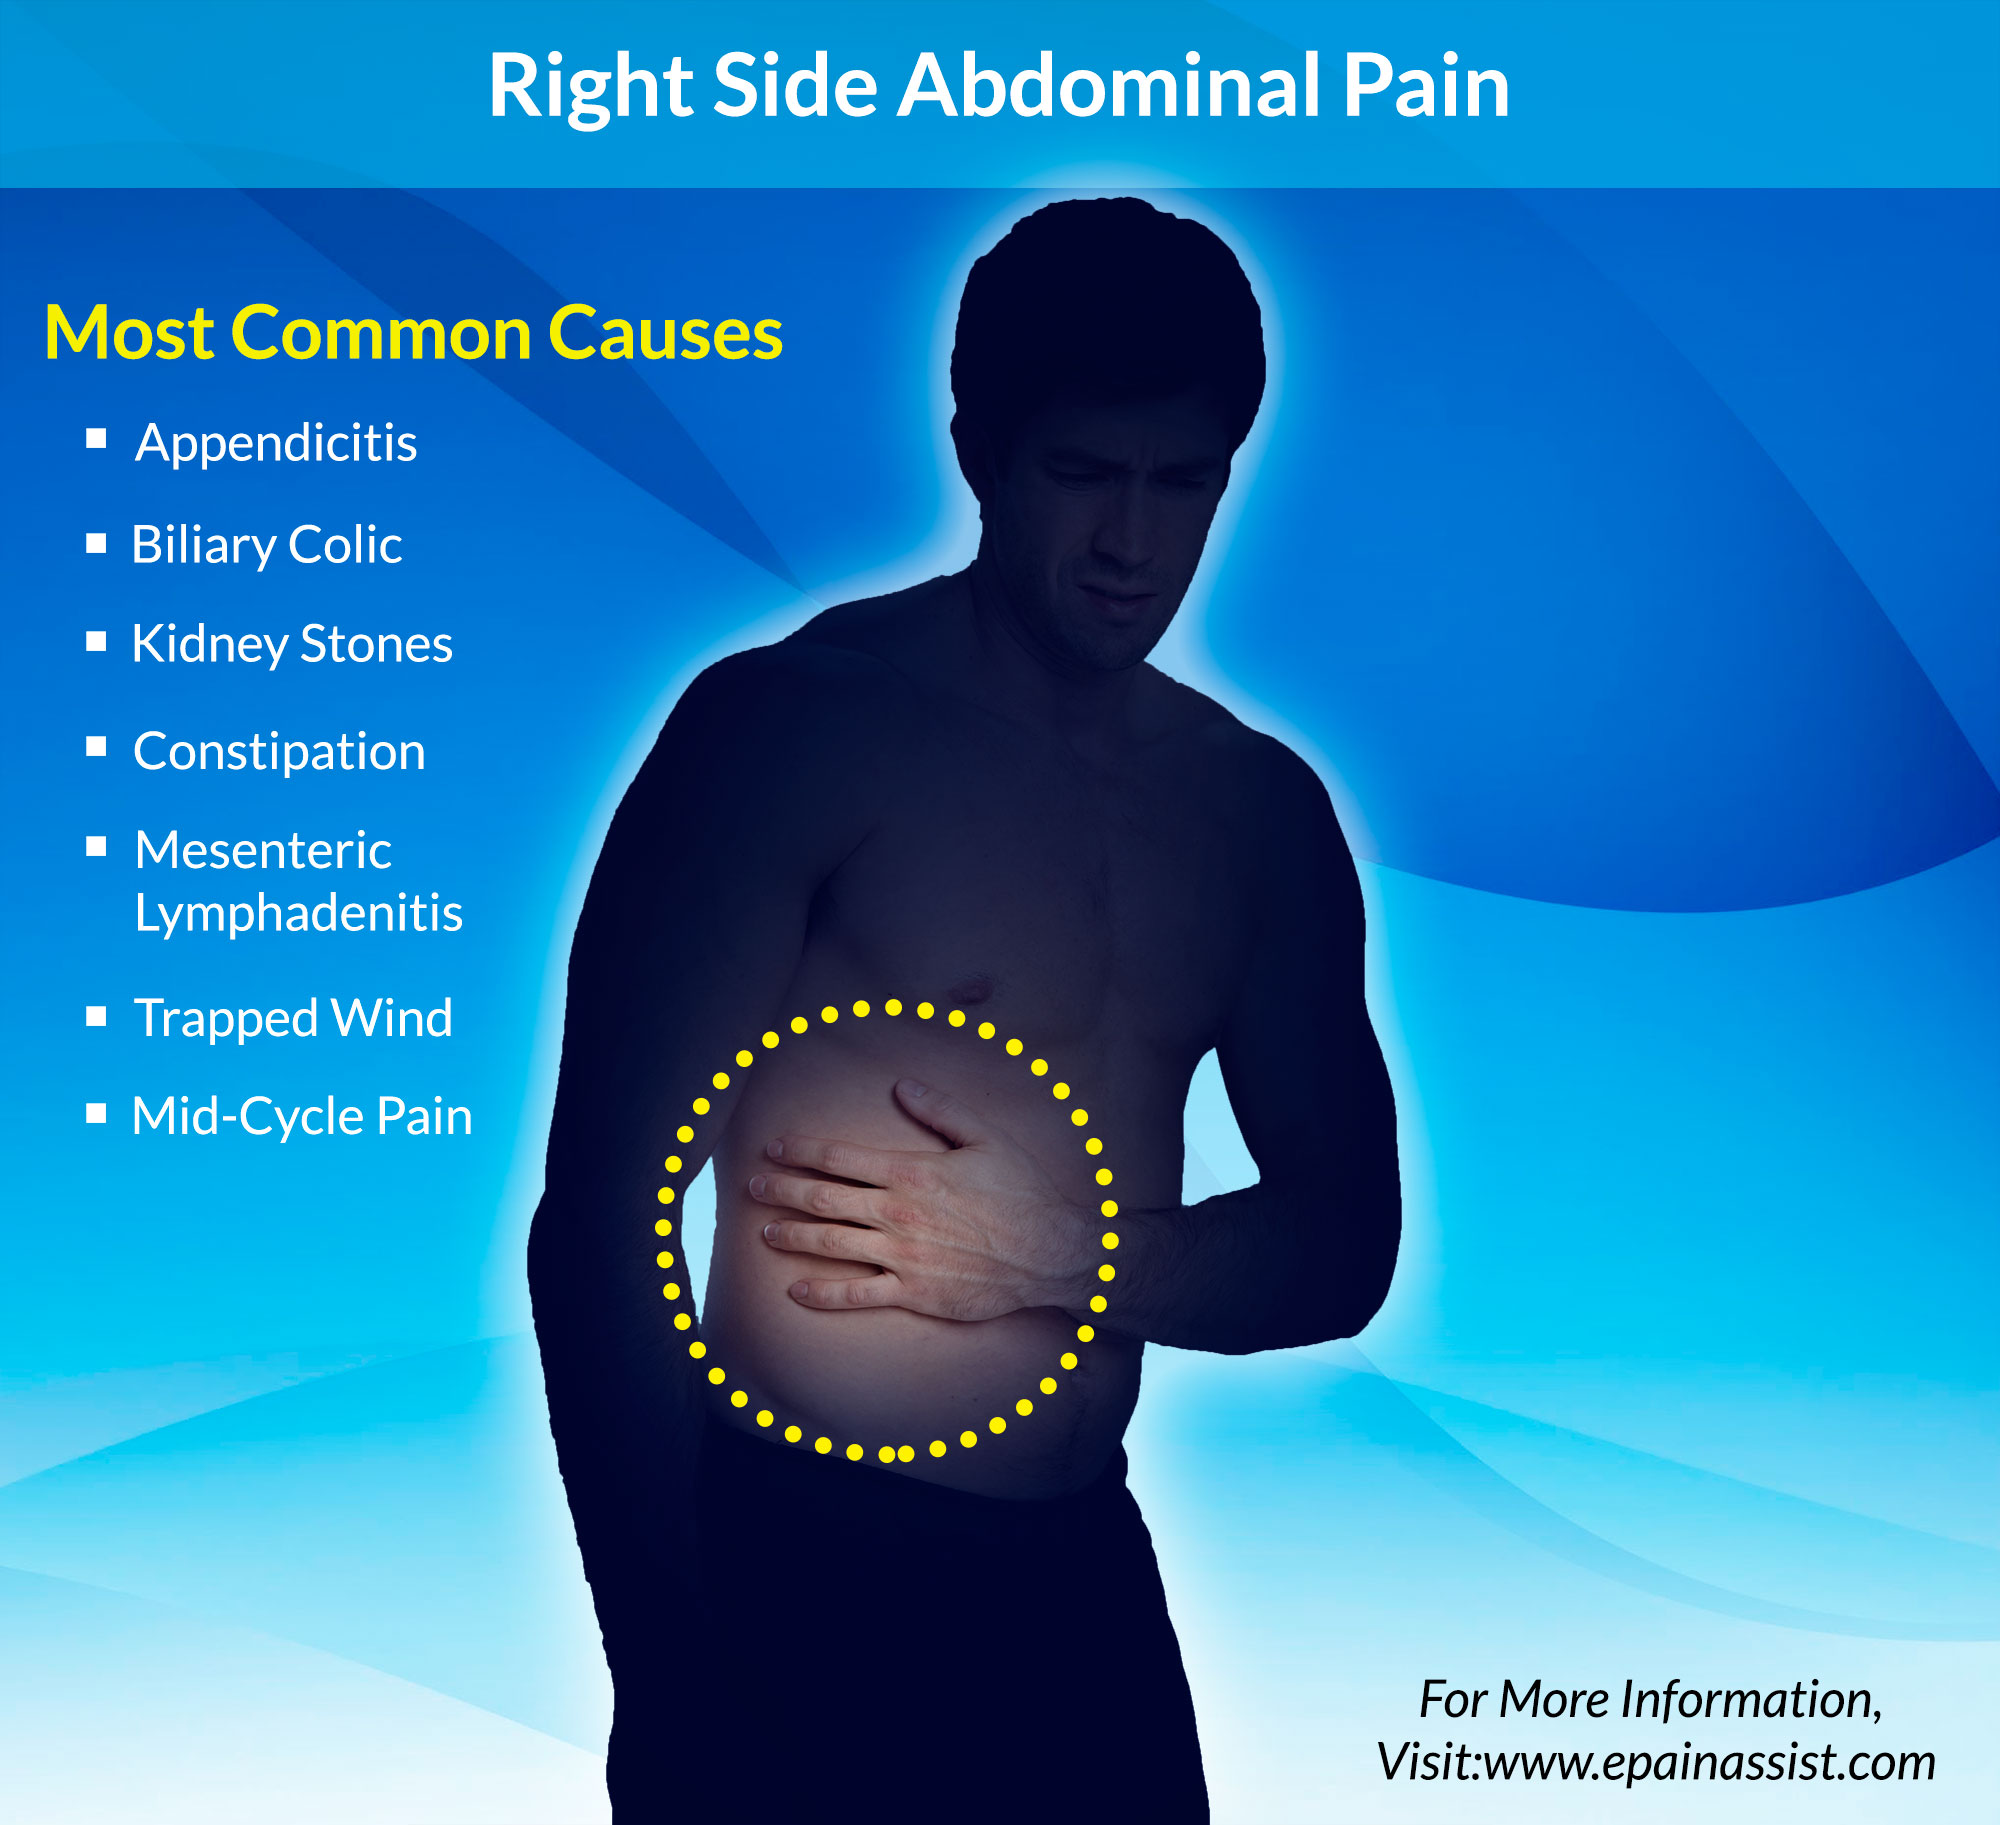 What Can Cause Right Side Abdominal Pain? - photo#30